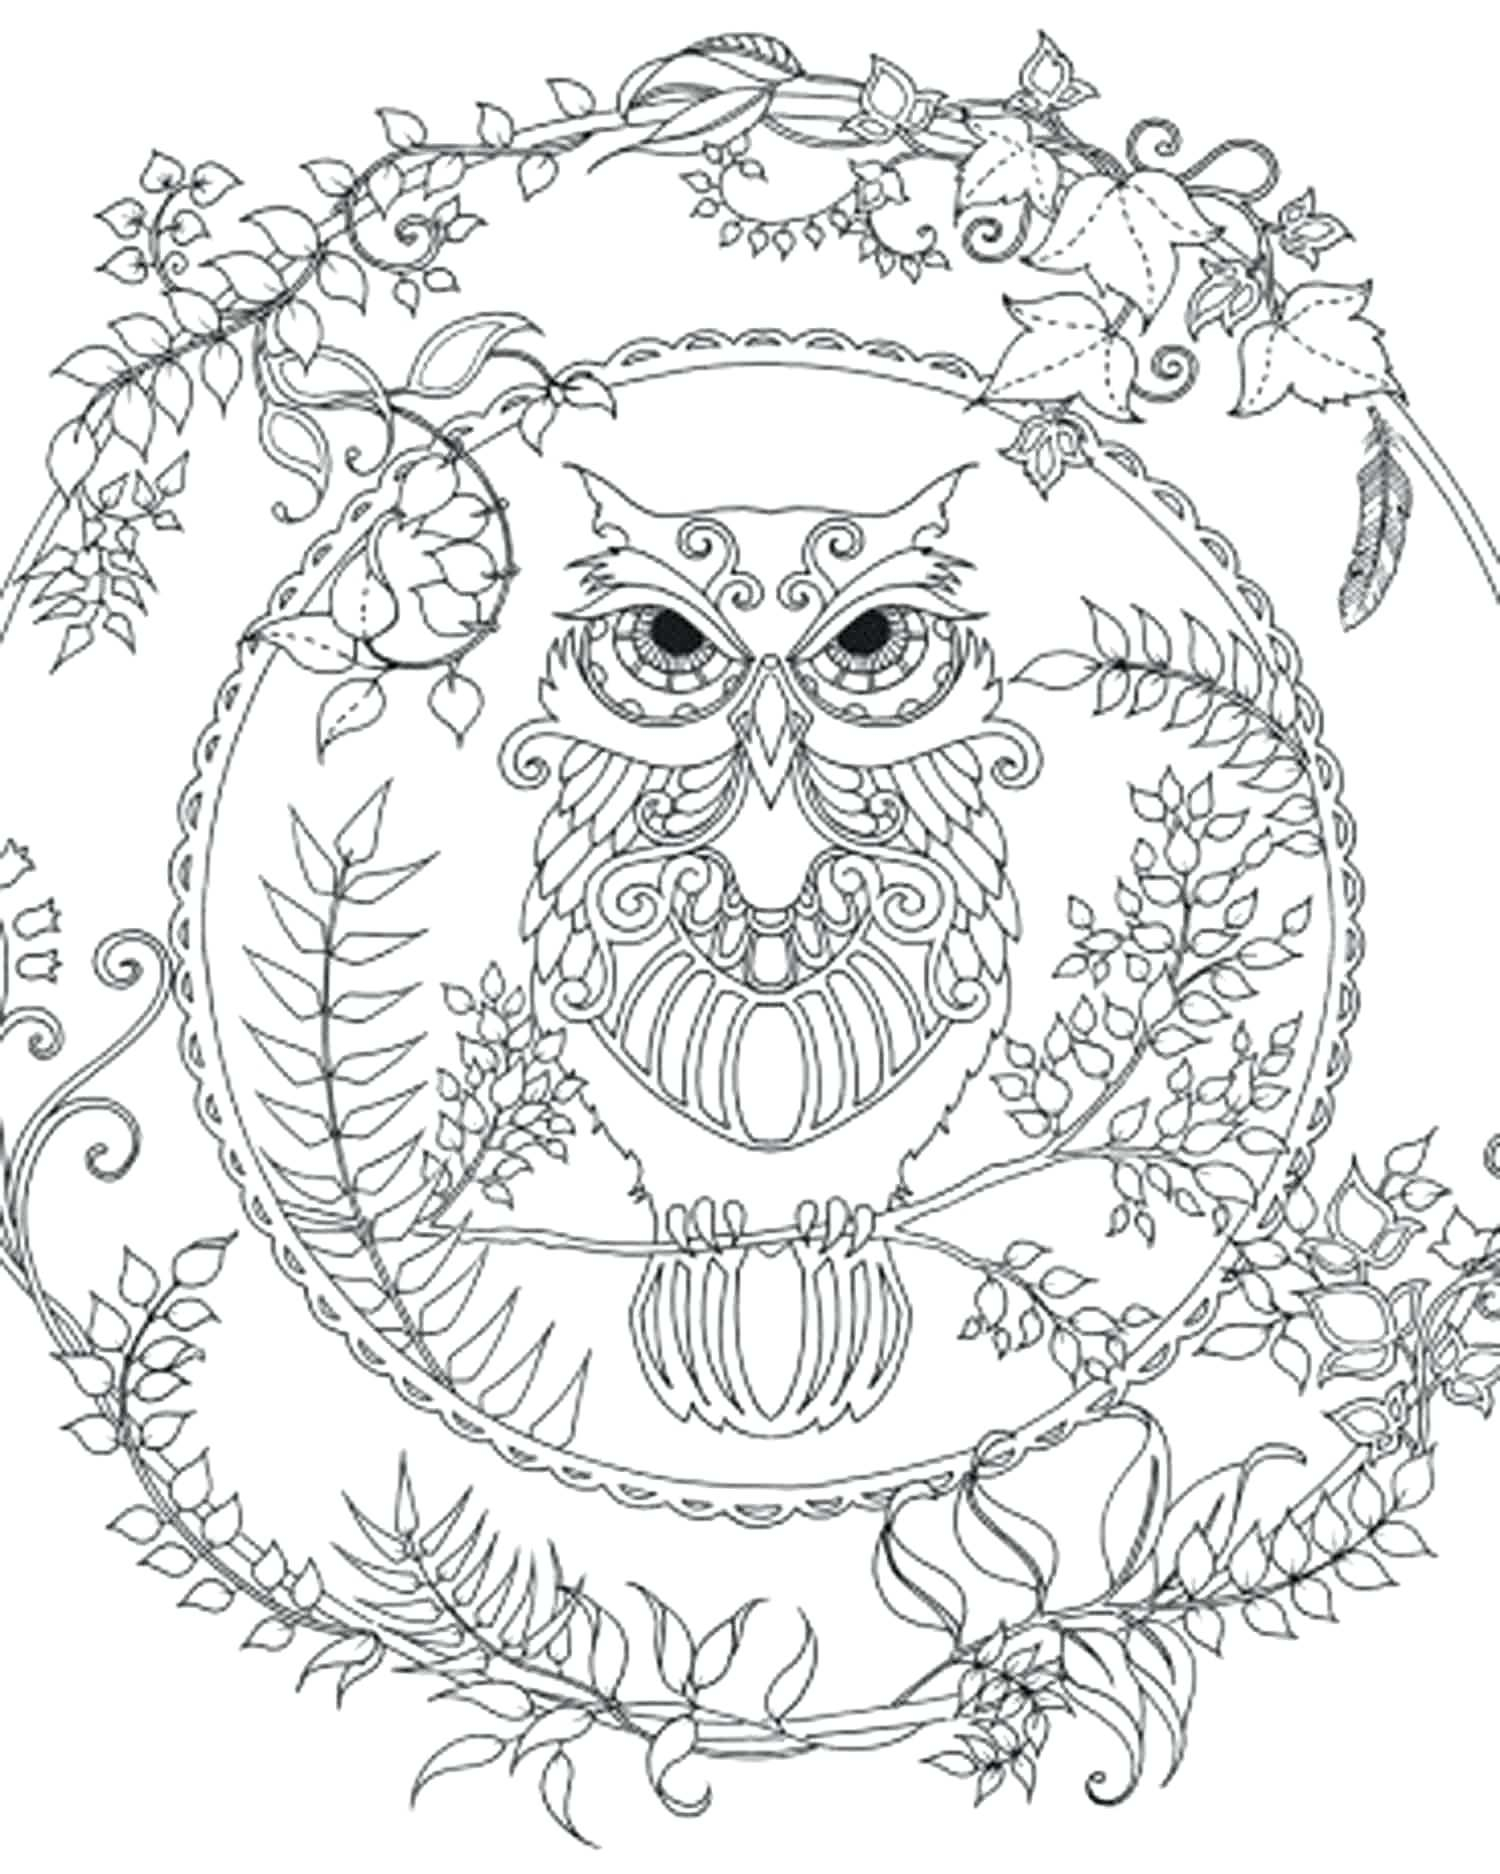 1500x1874 Owl Zentangle Coloring Page To Color Gallery